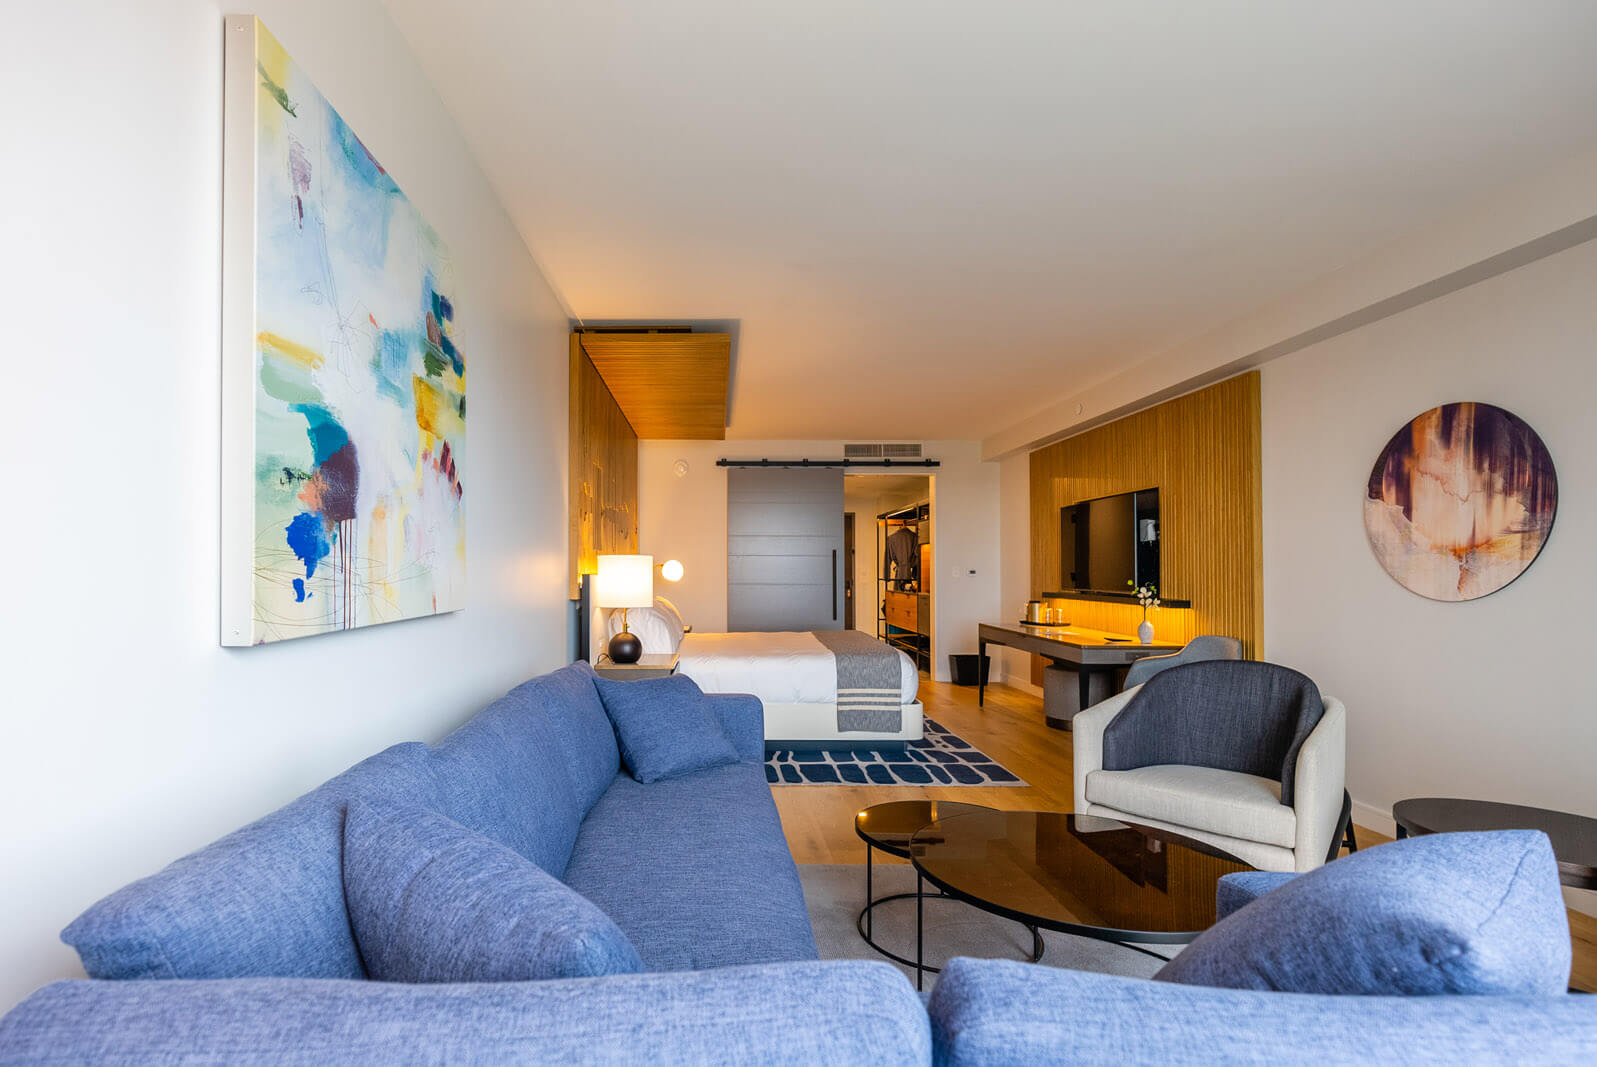 hotel room at Canopy by Hilton Portland Waterfront in Maine